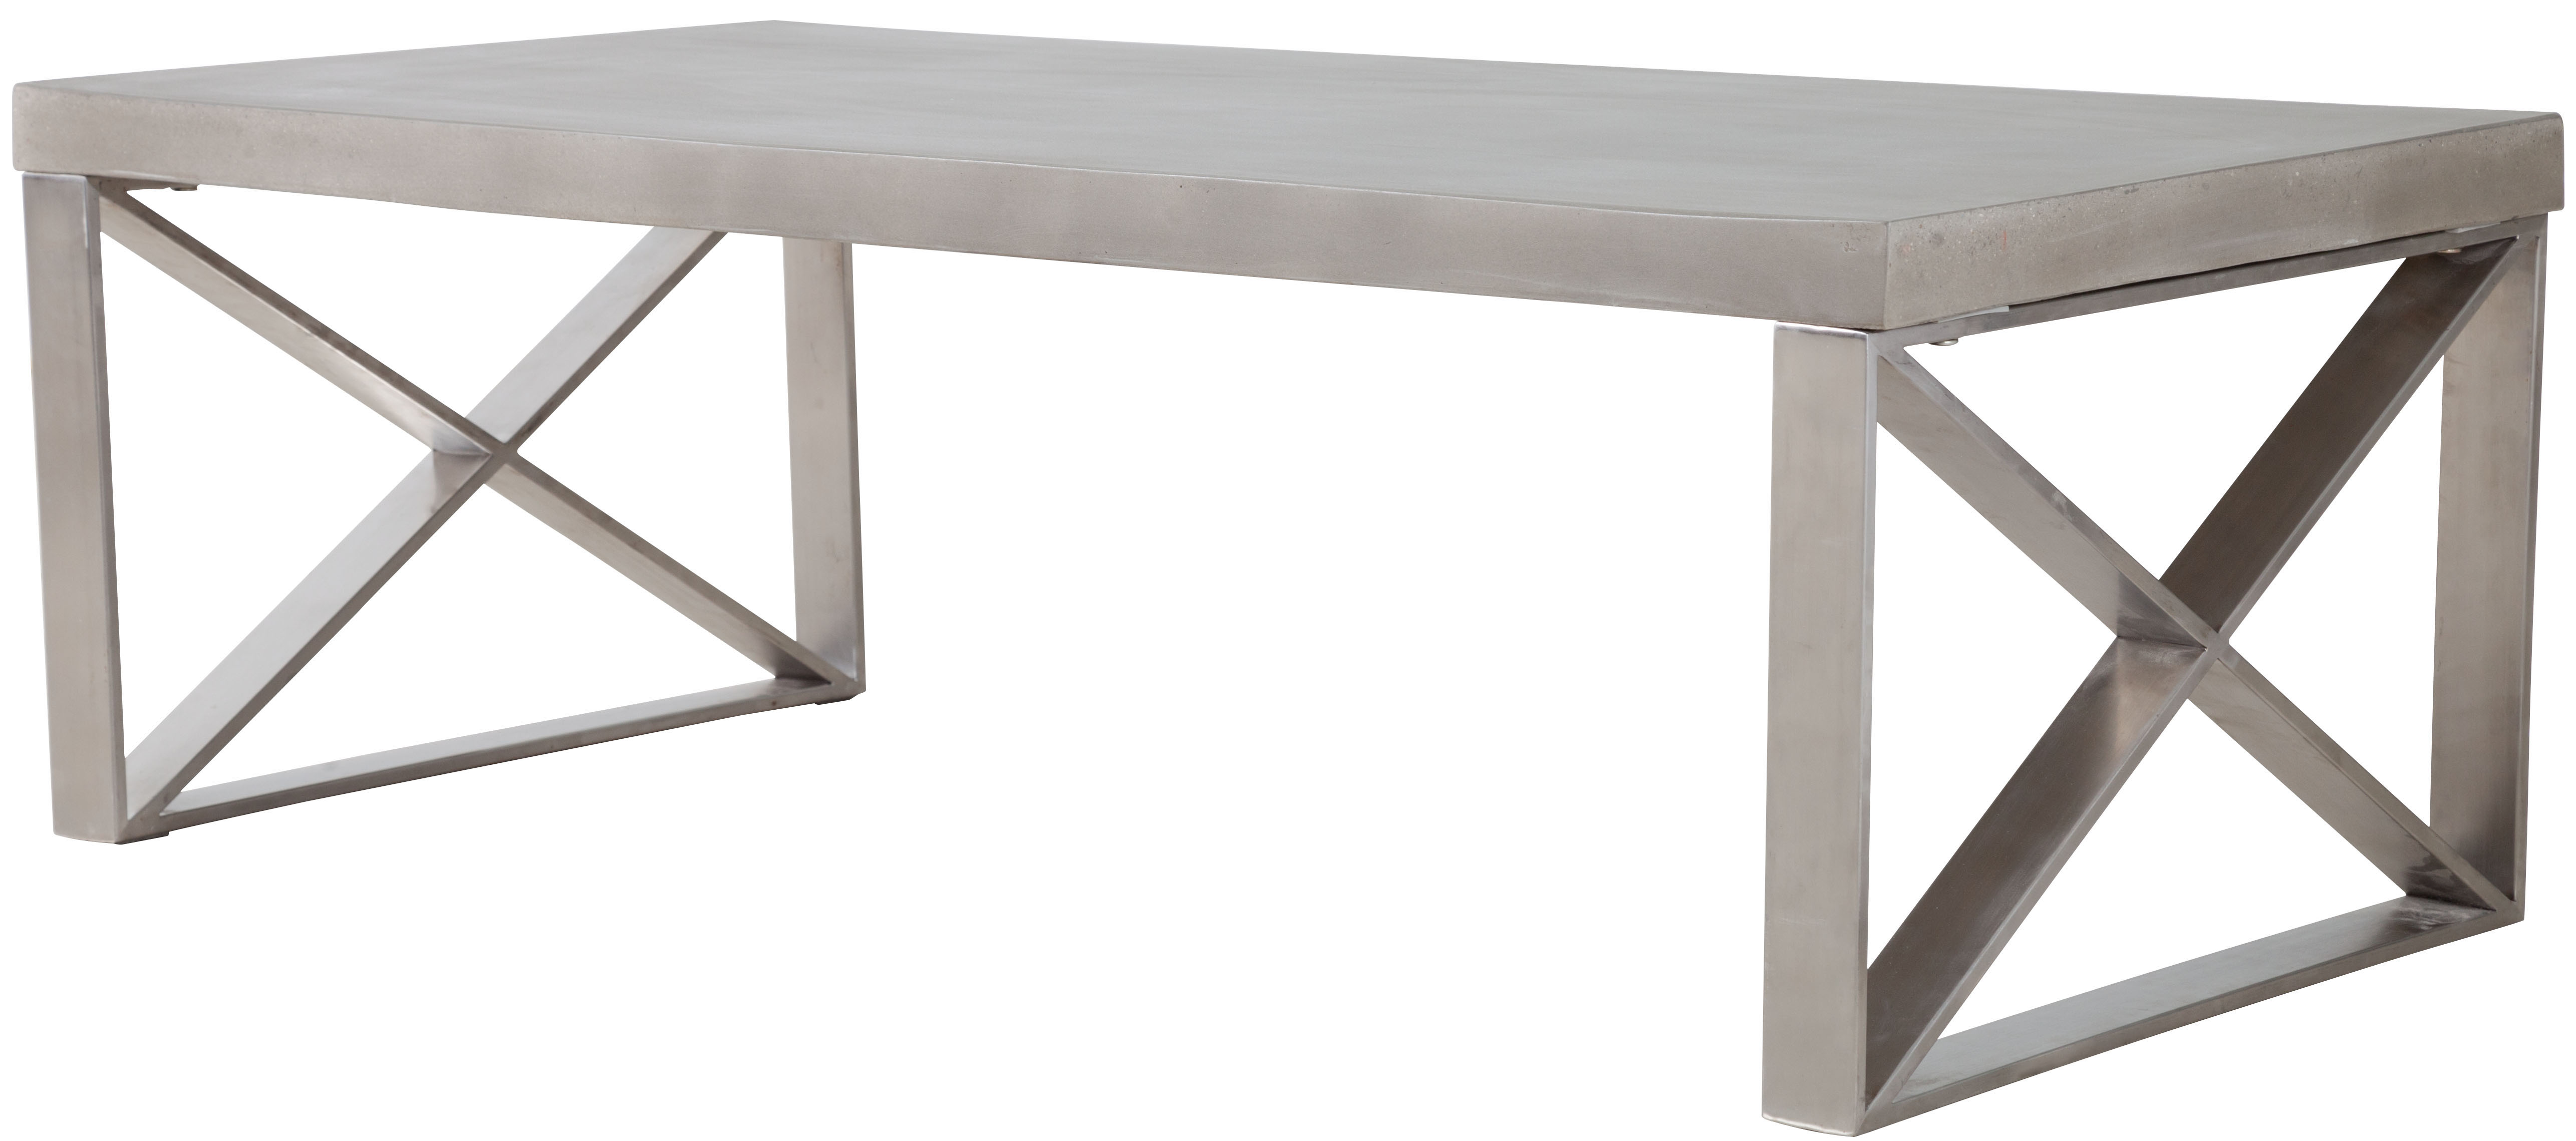 zuo paragon coffee table